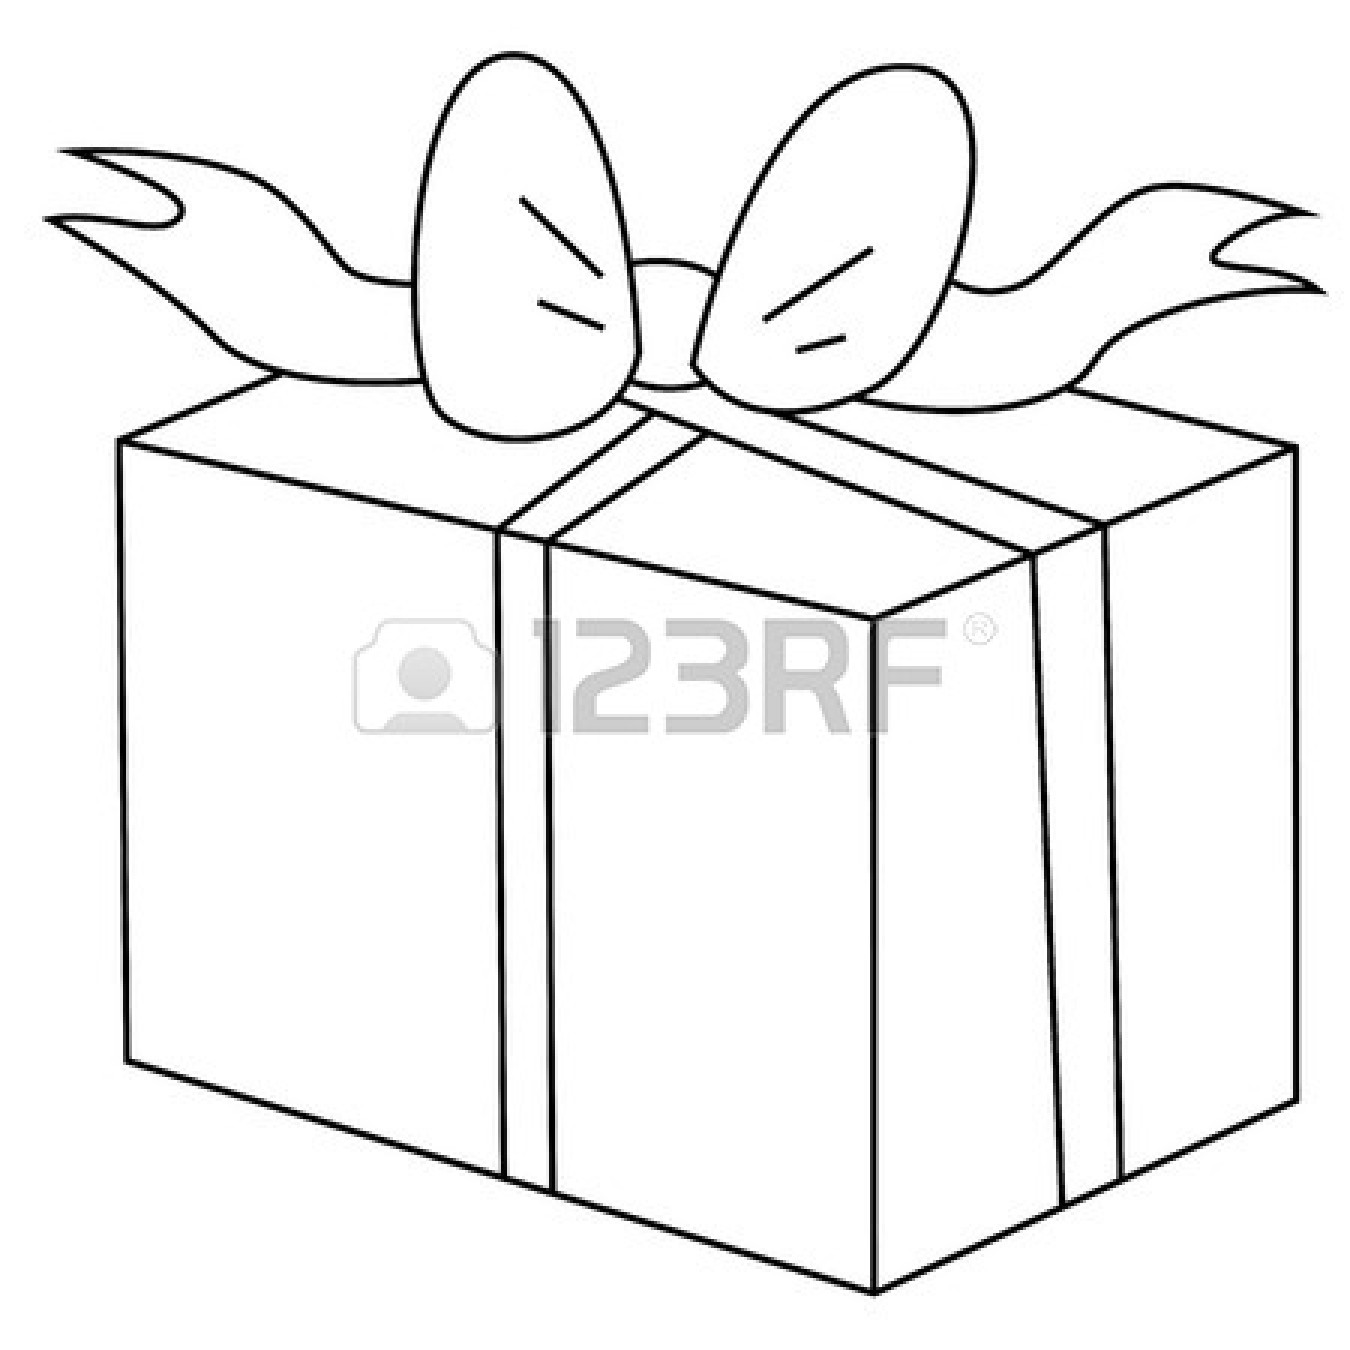 1350x1350 Box Clipart Black And White Collection